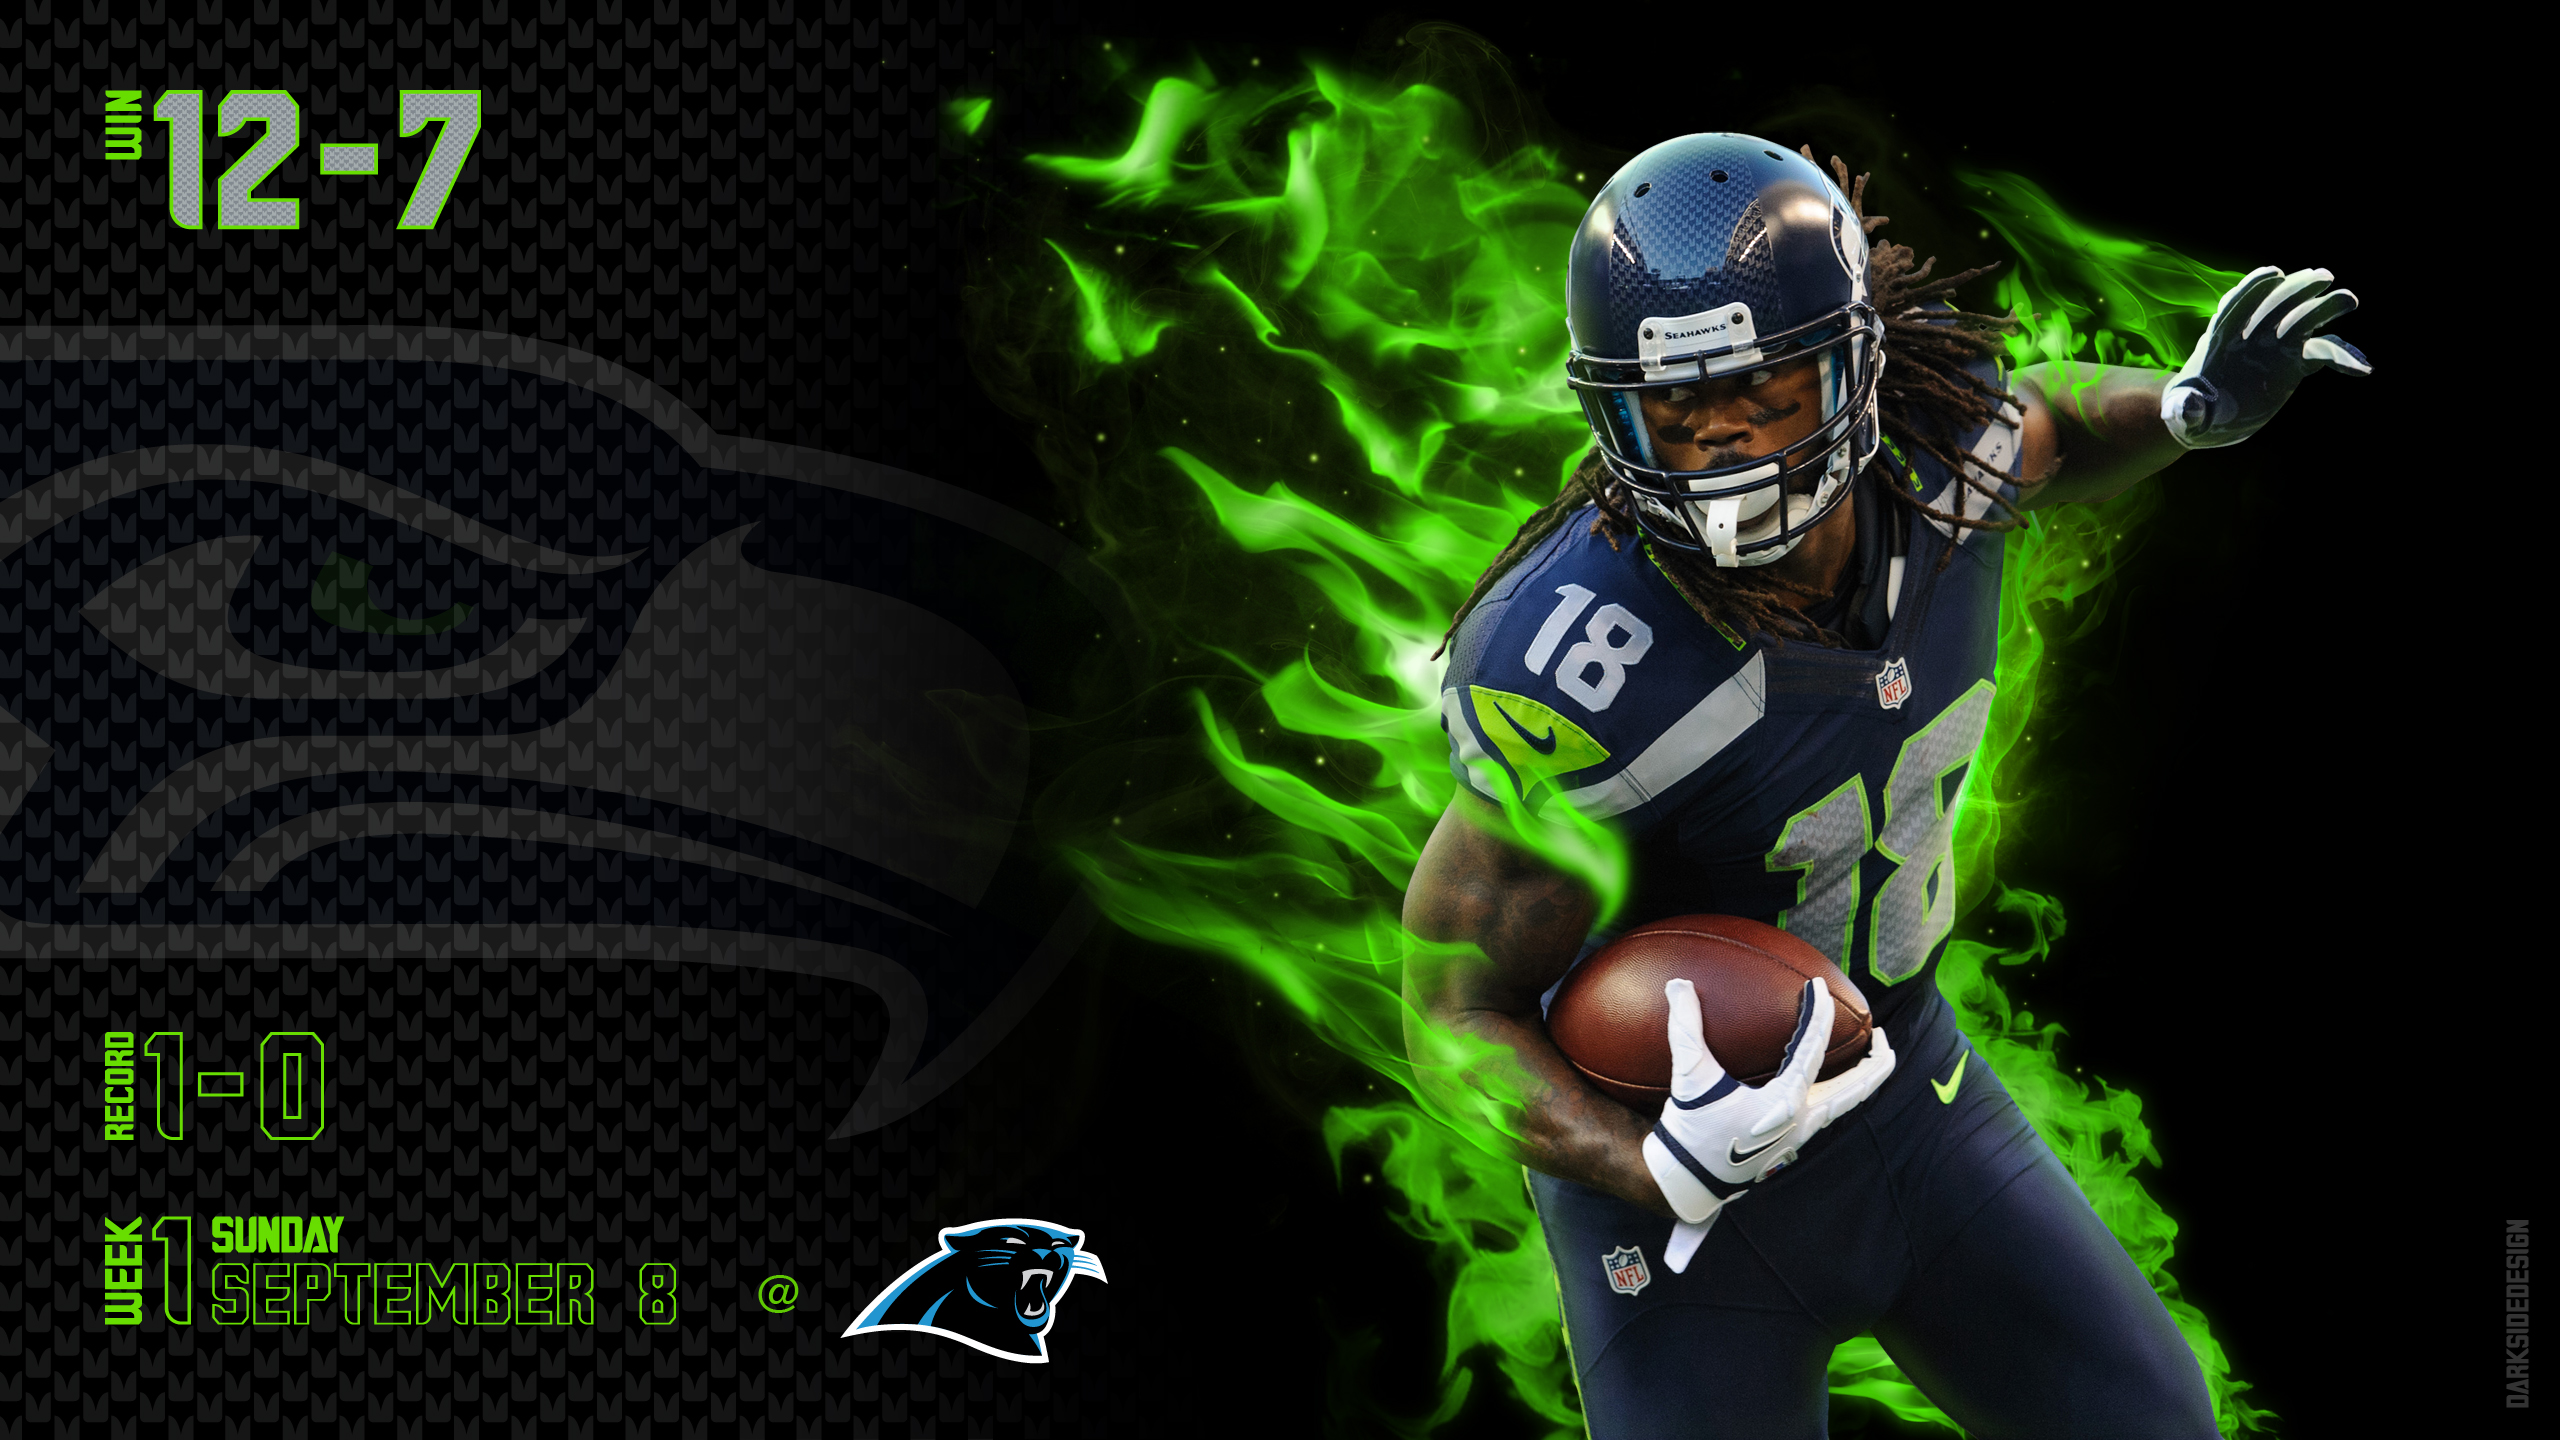 best nfl players wallpapers wallpapersafari